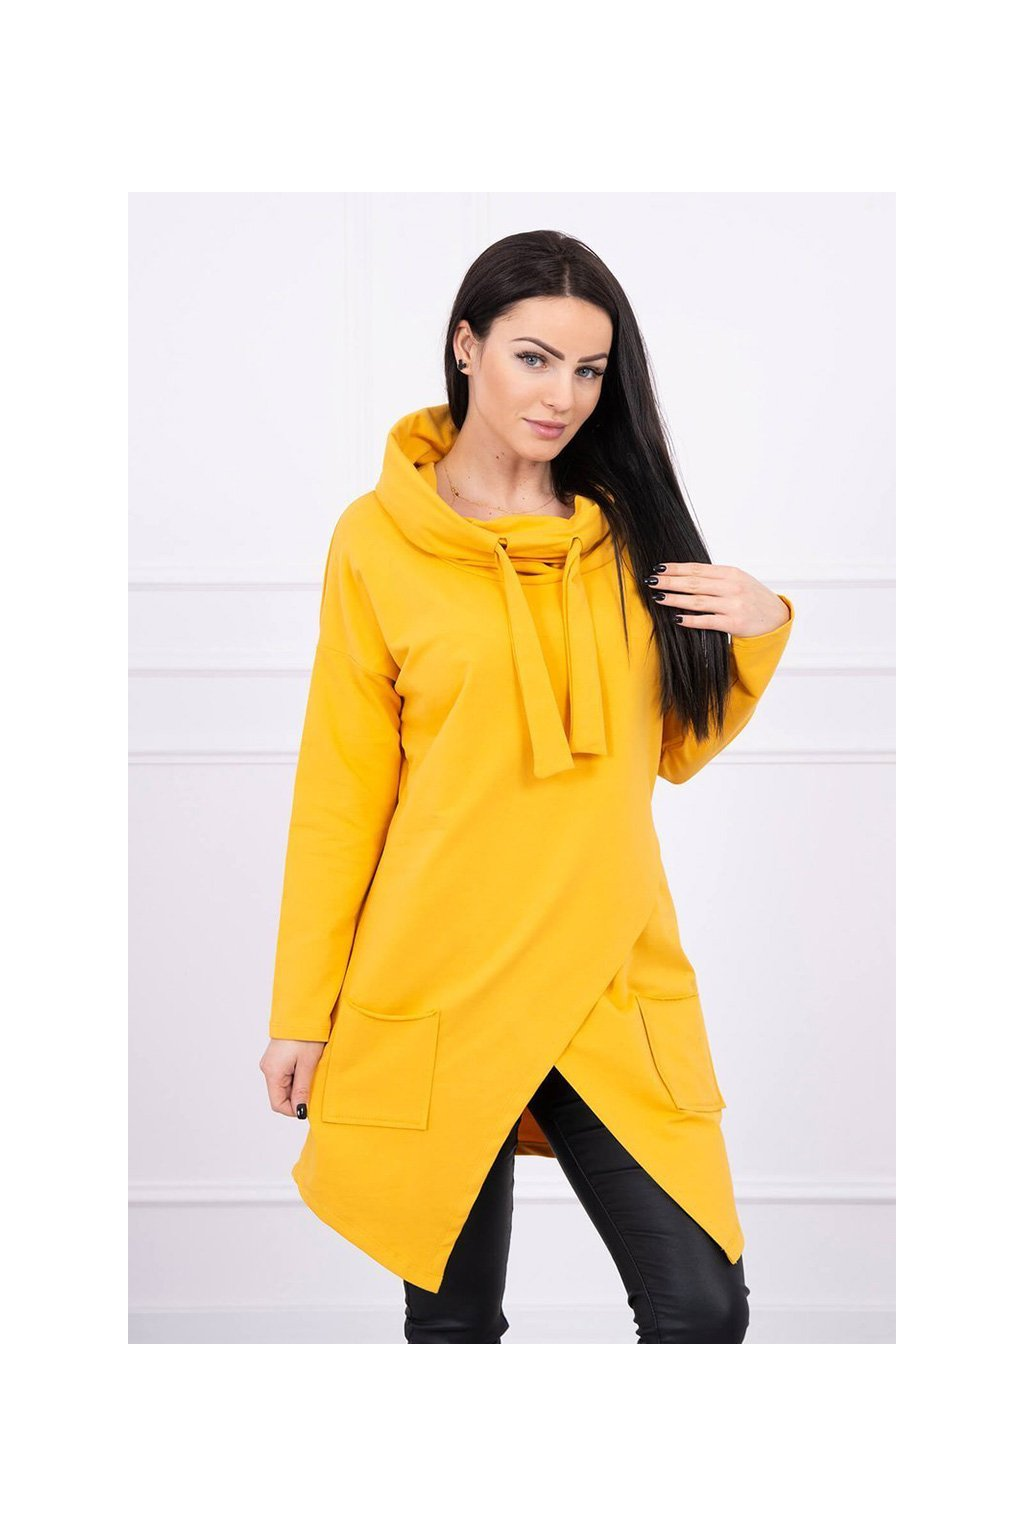 eng pl Tunic with envelope front Oversize mustard 16545 3